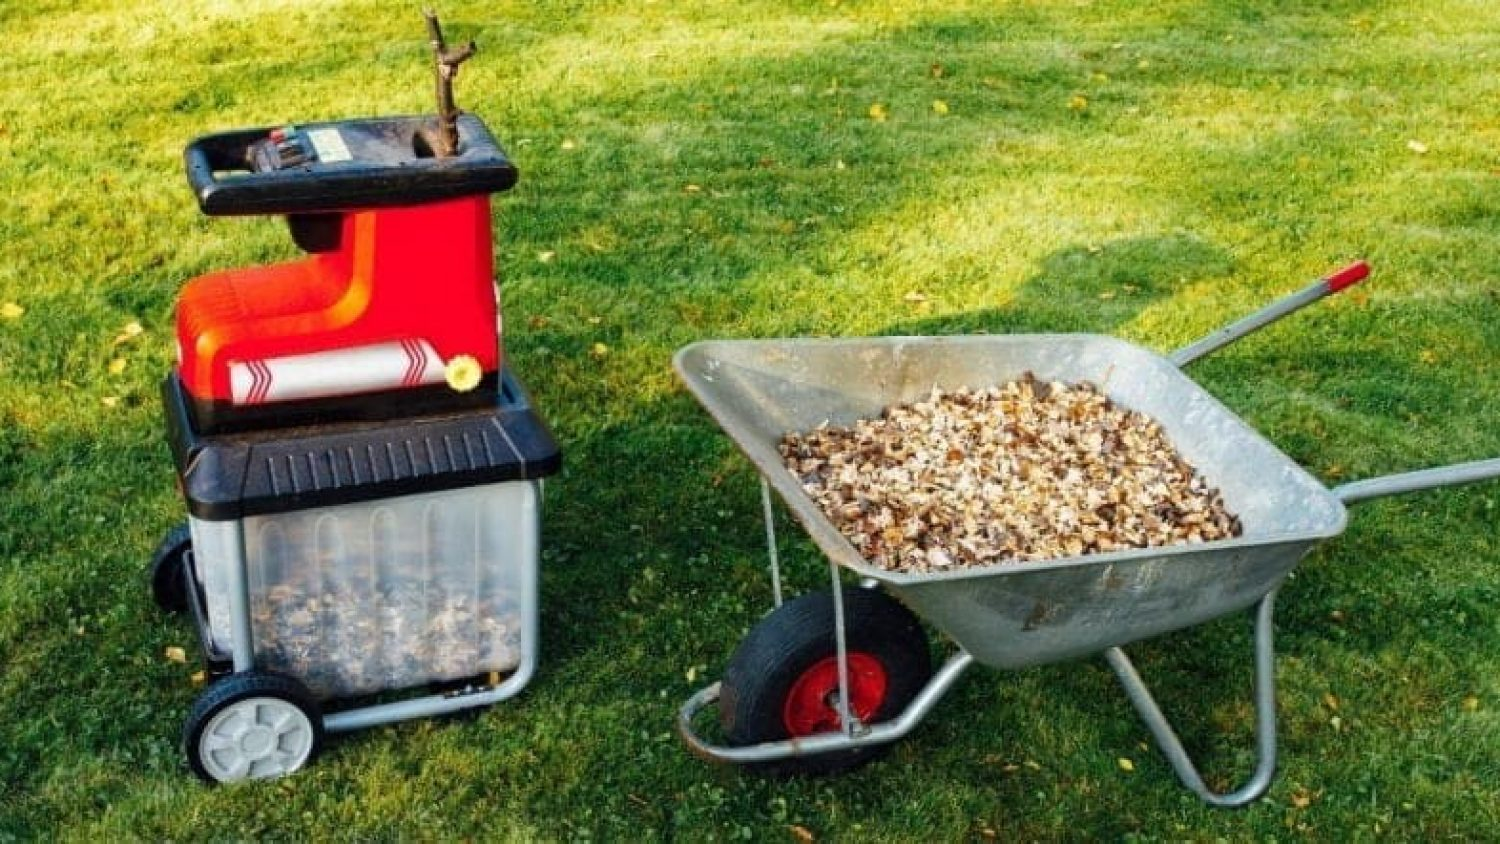 Should You Buy a Garden Shredder? 3 Reasons Why Garden Shredders Are a Great Investment!